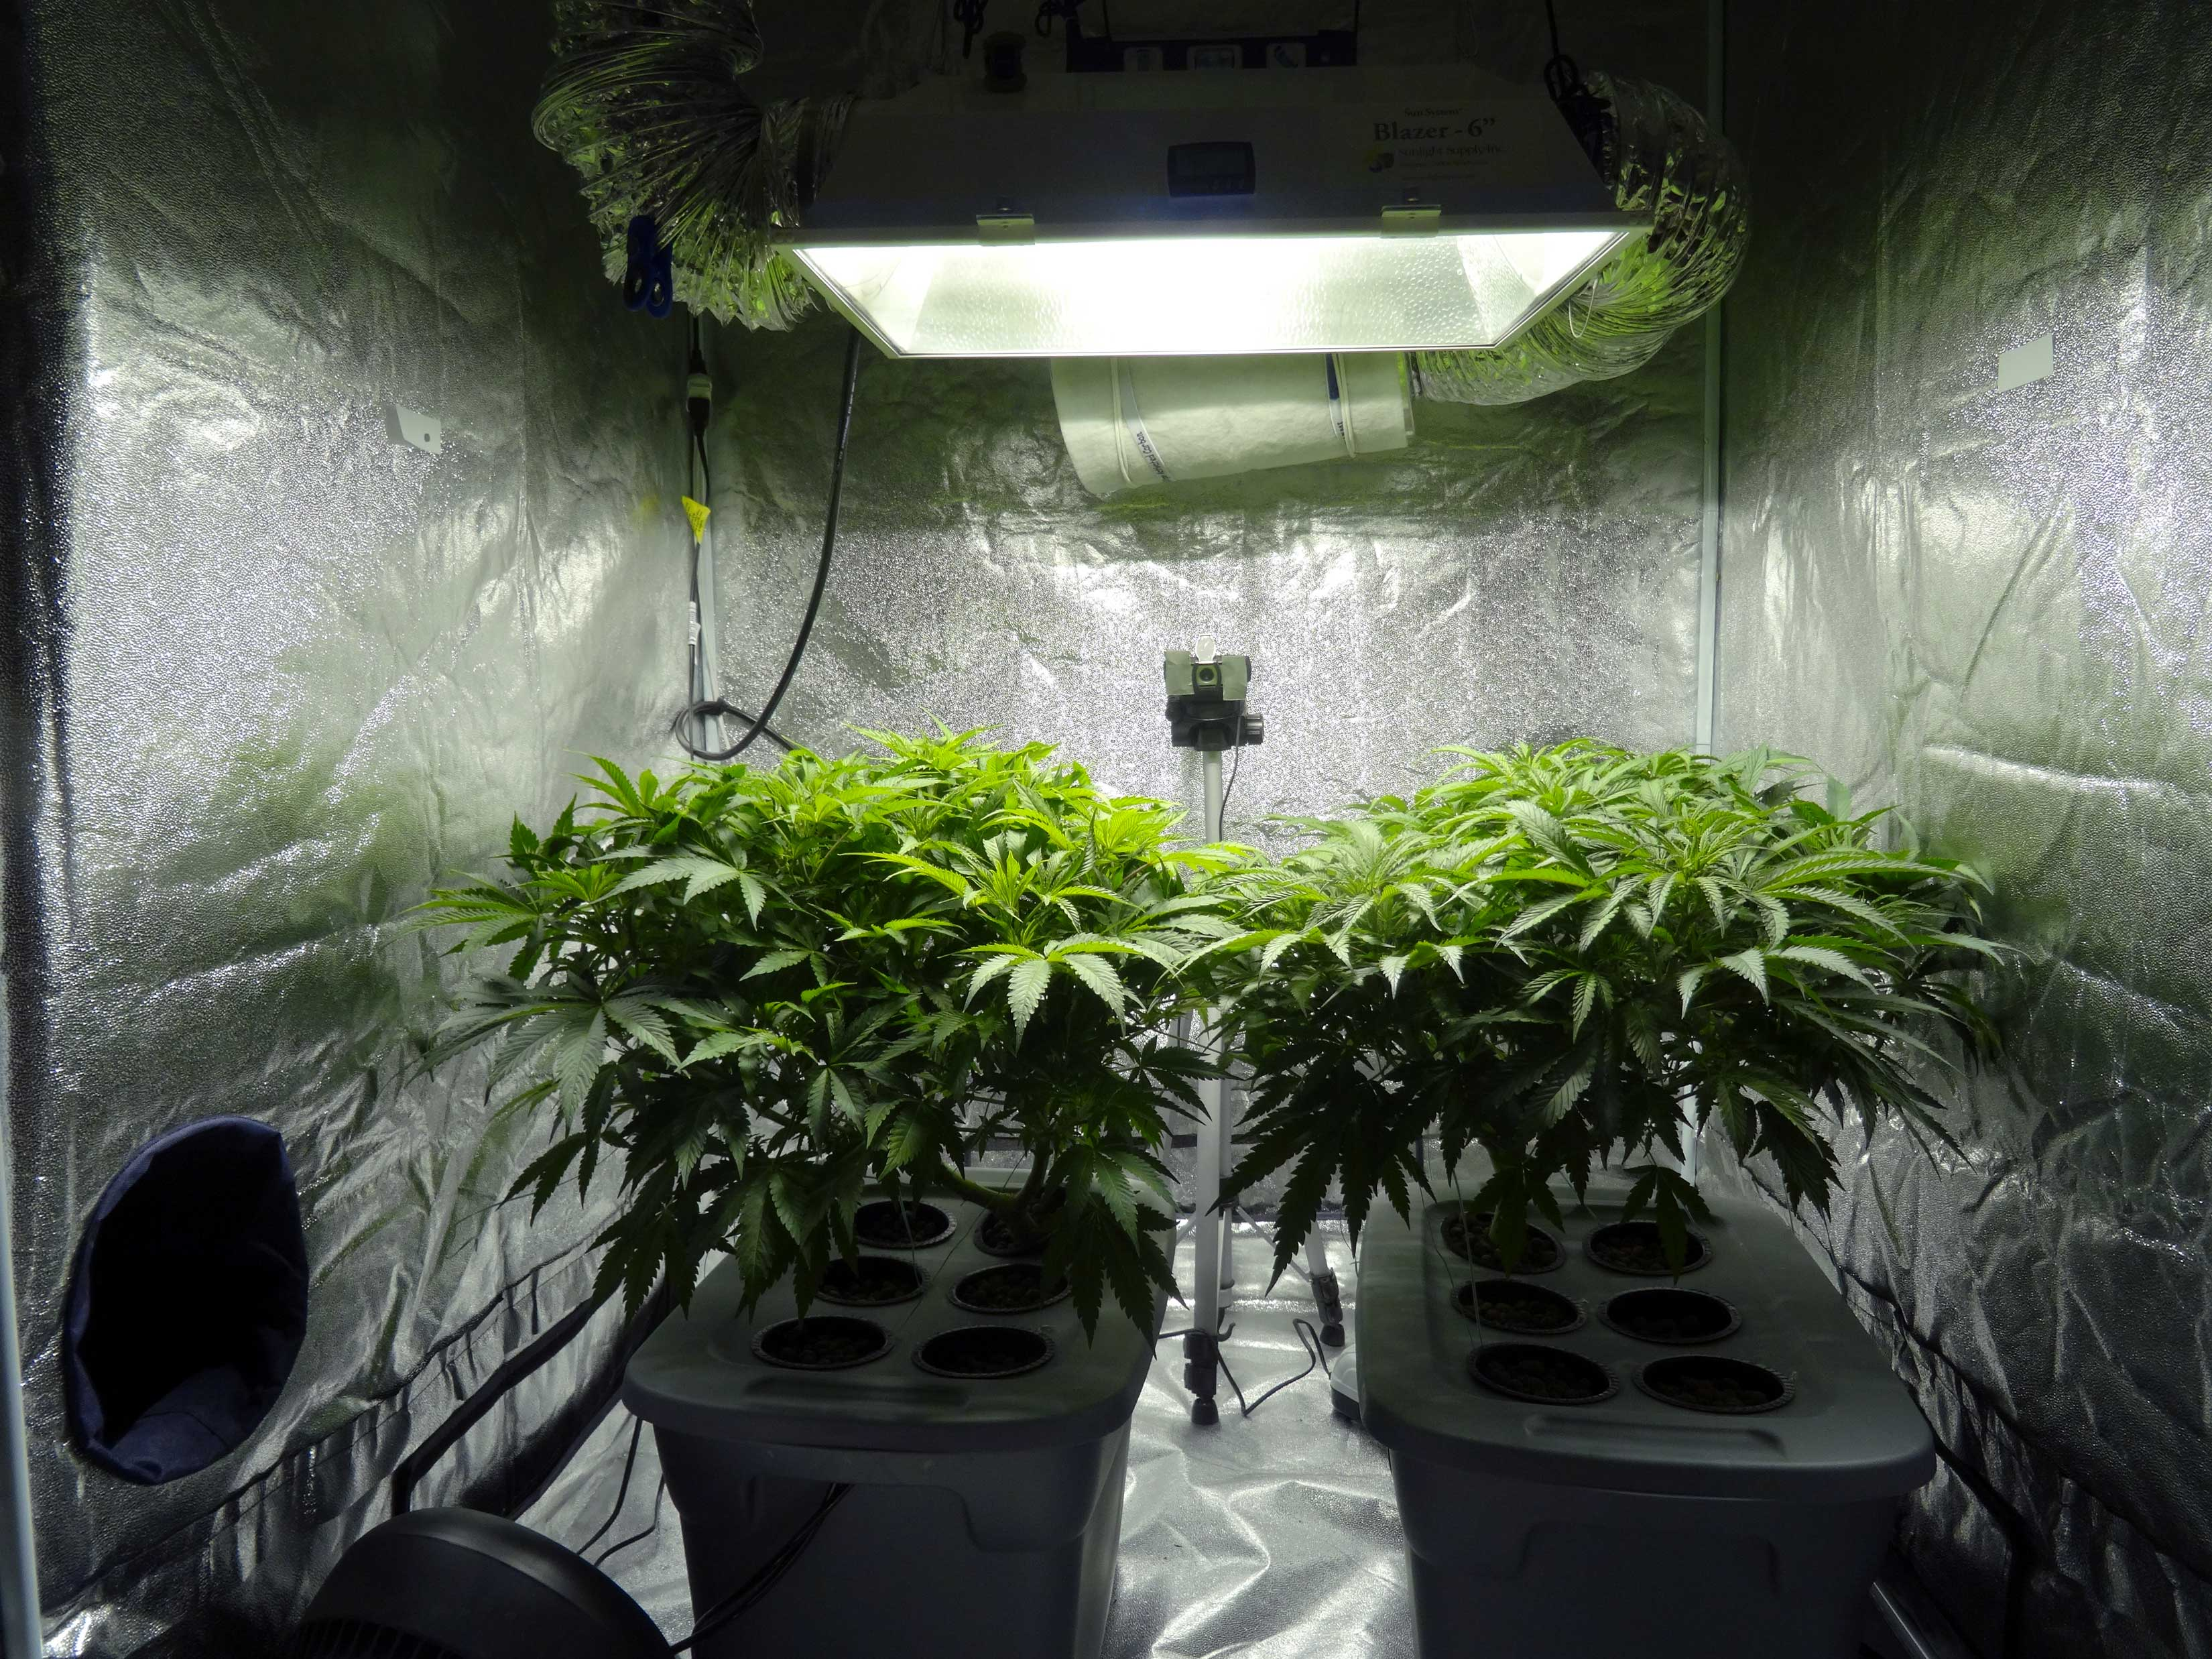 Photo credit & 8 Steps To Building The Perfect Indoor Grow Room